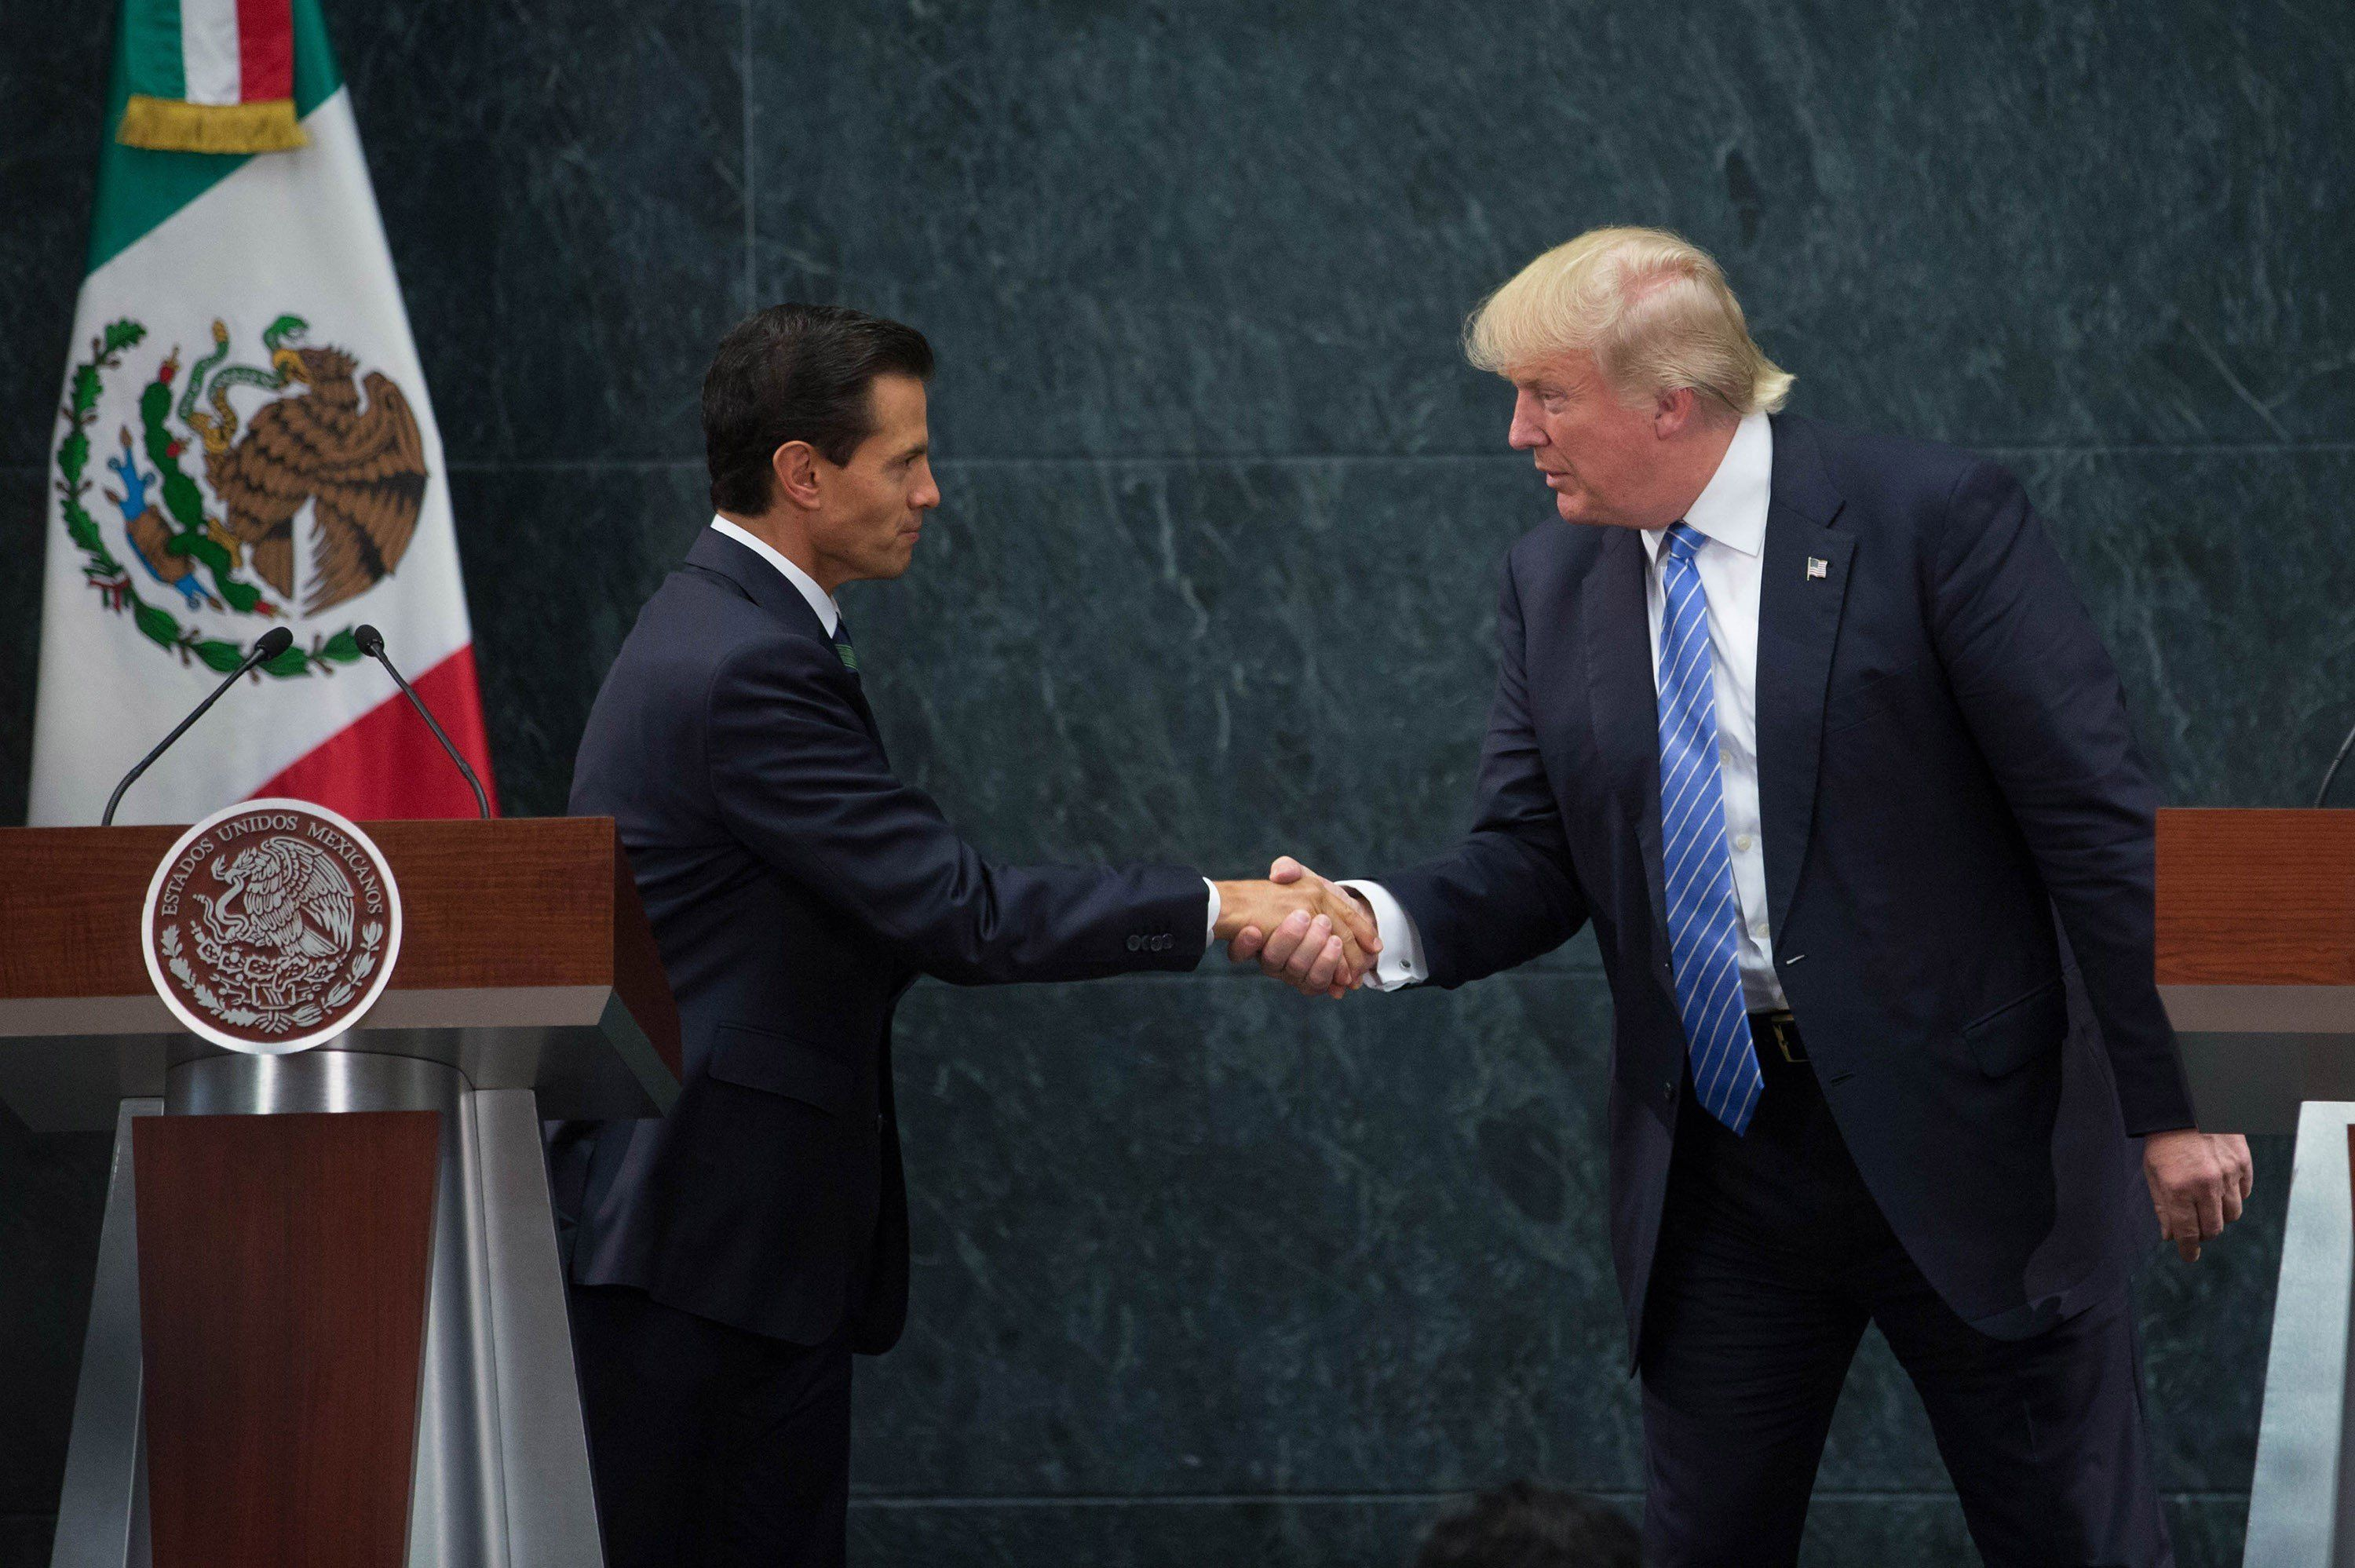 Mexican President Enrique Pena Nieto and U.S. President-elect Donald Trump attending a meeting in Mexico City on August